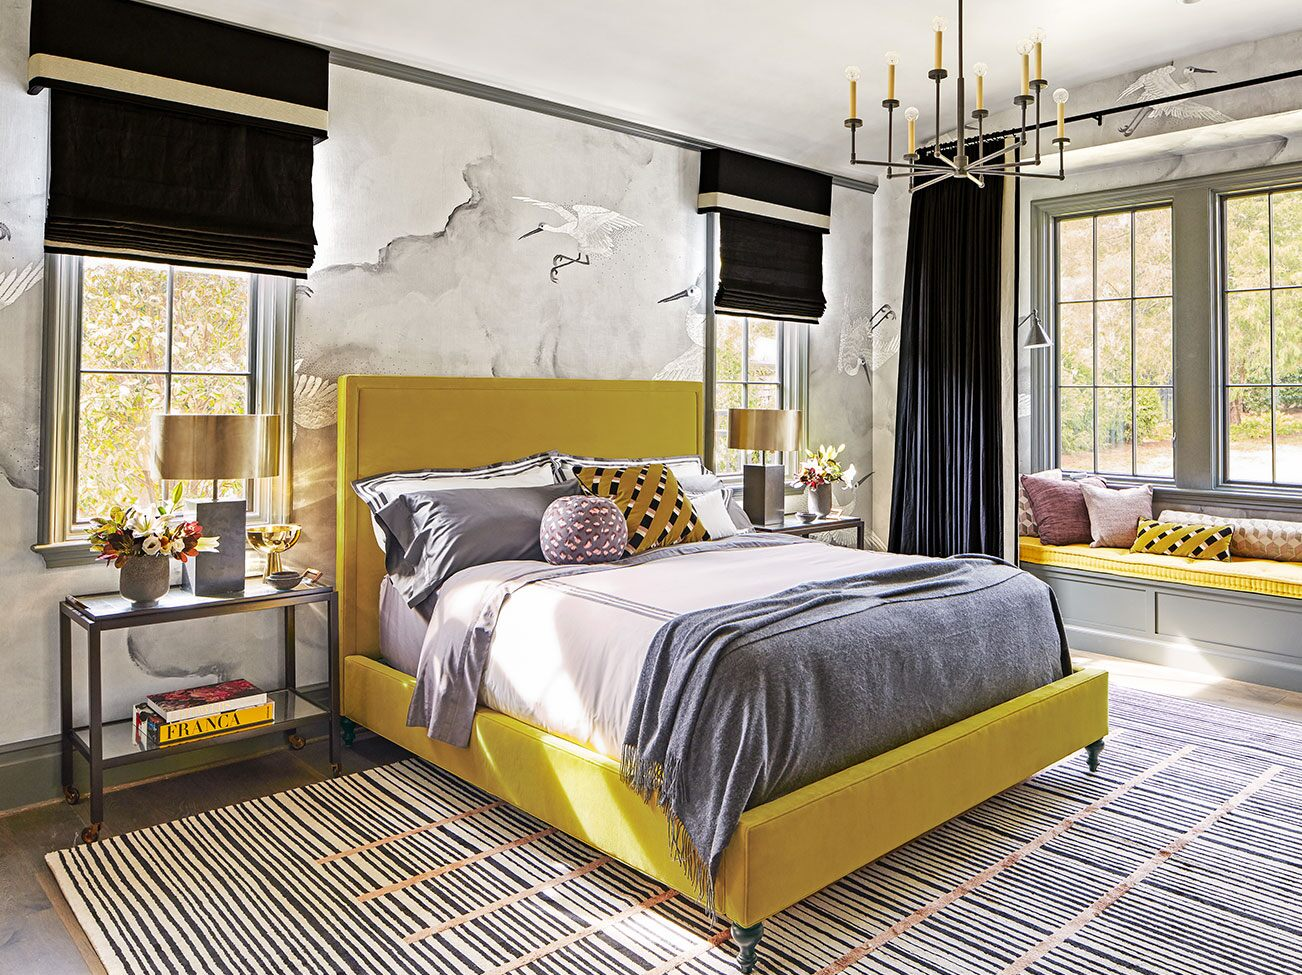 Bedroom with cloud mural, black window treatments, striped area rug, mustard yellow upholstered bed and window seat.